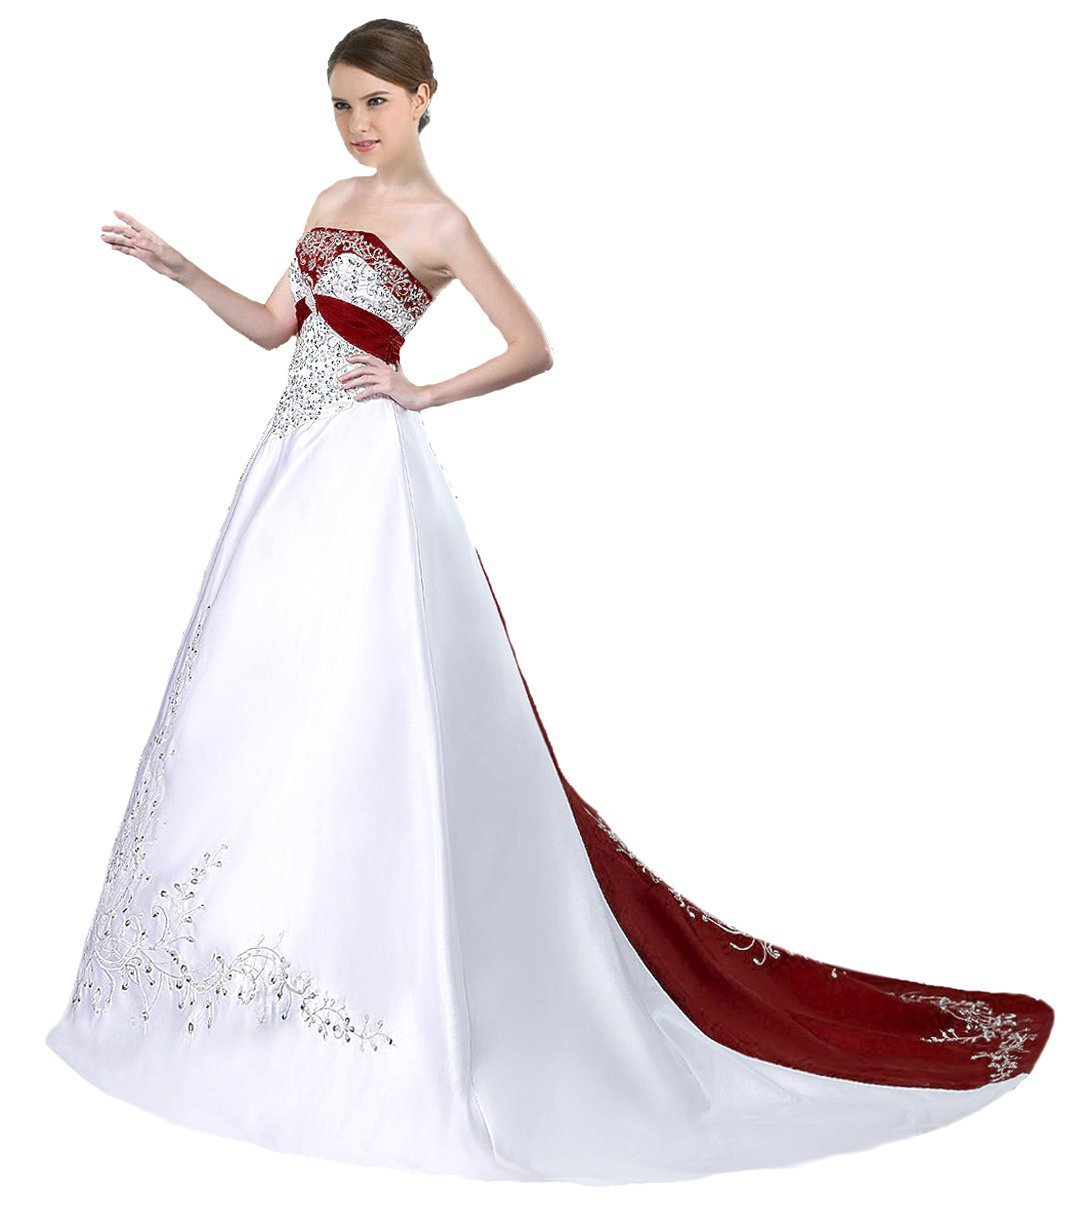 Wedding White Gown Dress: Cheap Burgundy And White Wedding Dresses,Wedding Gown